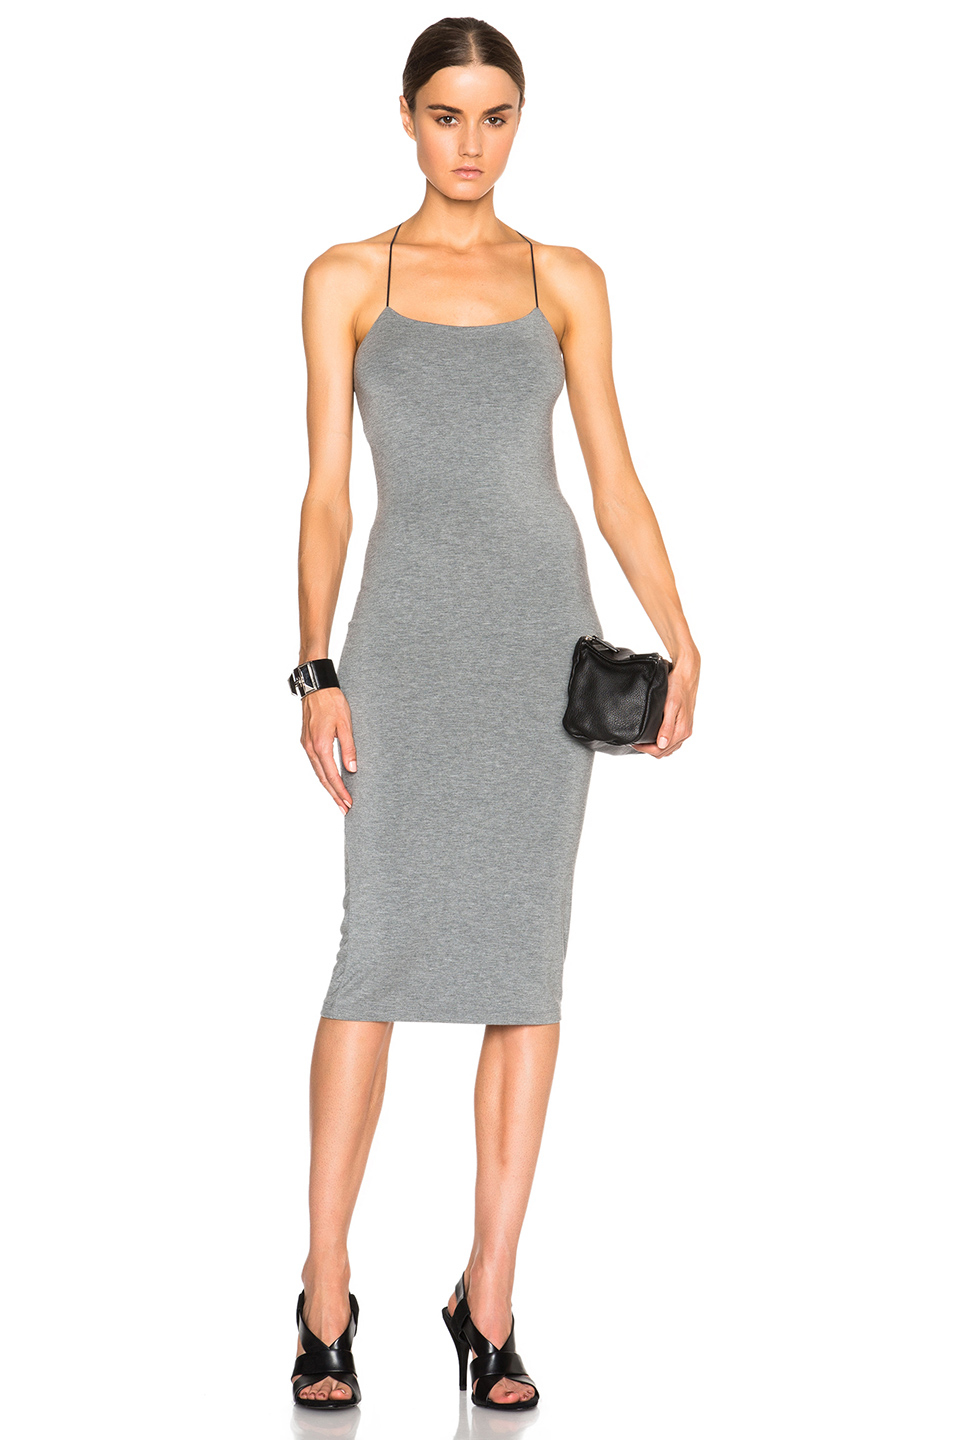 3a83a771e9f T By Alexander Wang Modal Spandex Strappy Tank Dress in Gray - Lyst